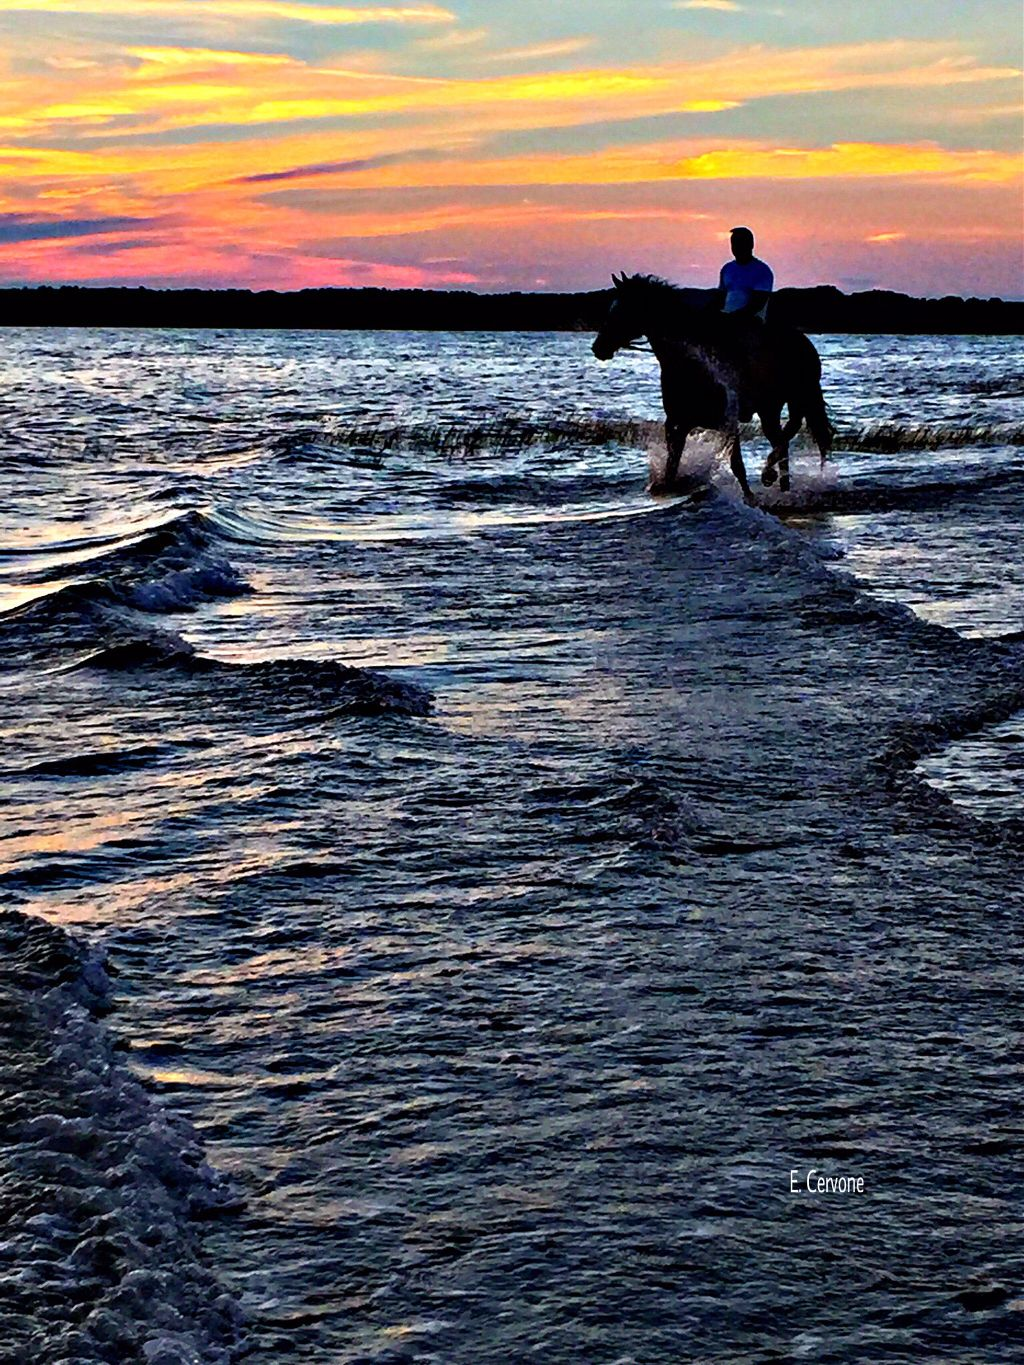 """"""" Elements of life - series """" Goodnight my friends 😍 #captured #sunset #summer #waves #clouds"""